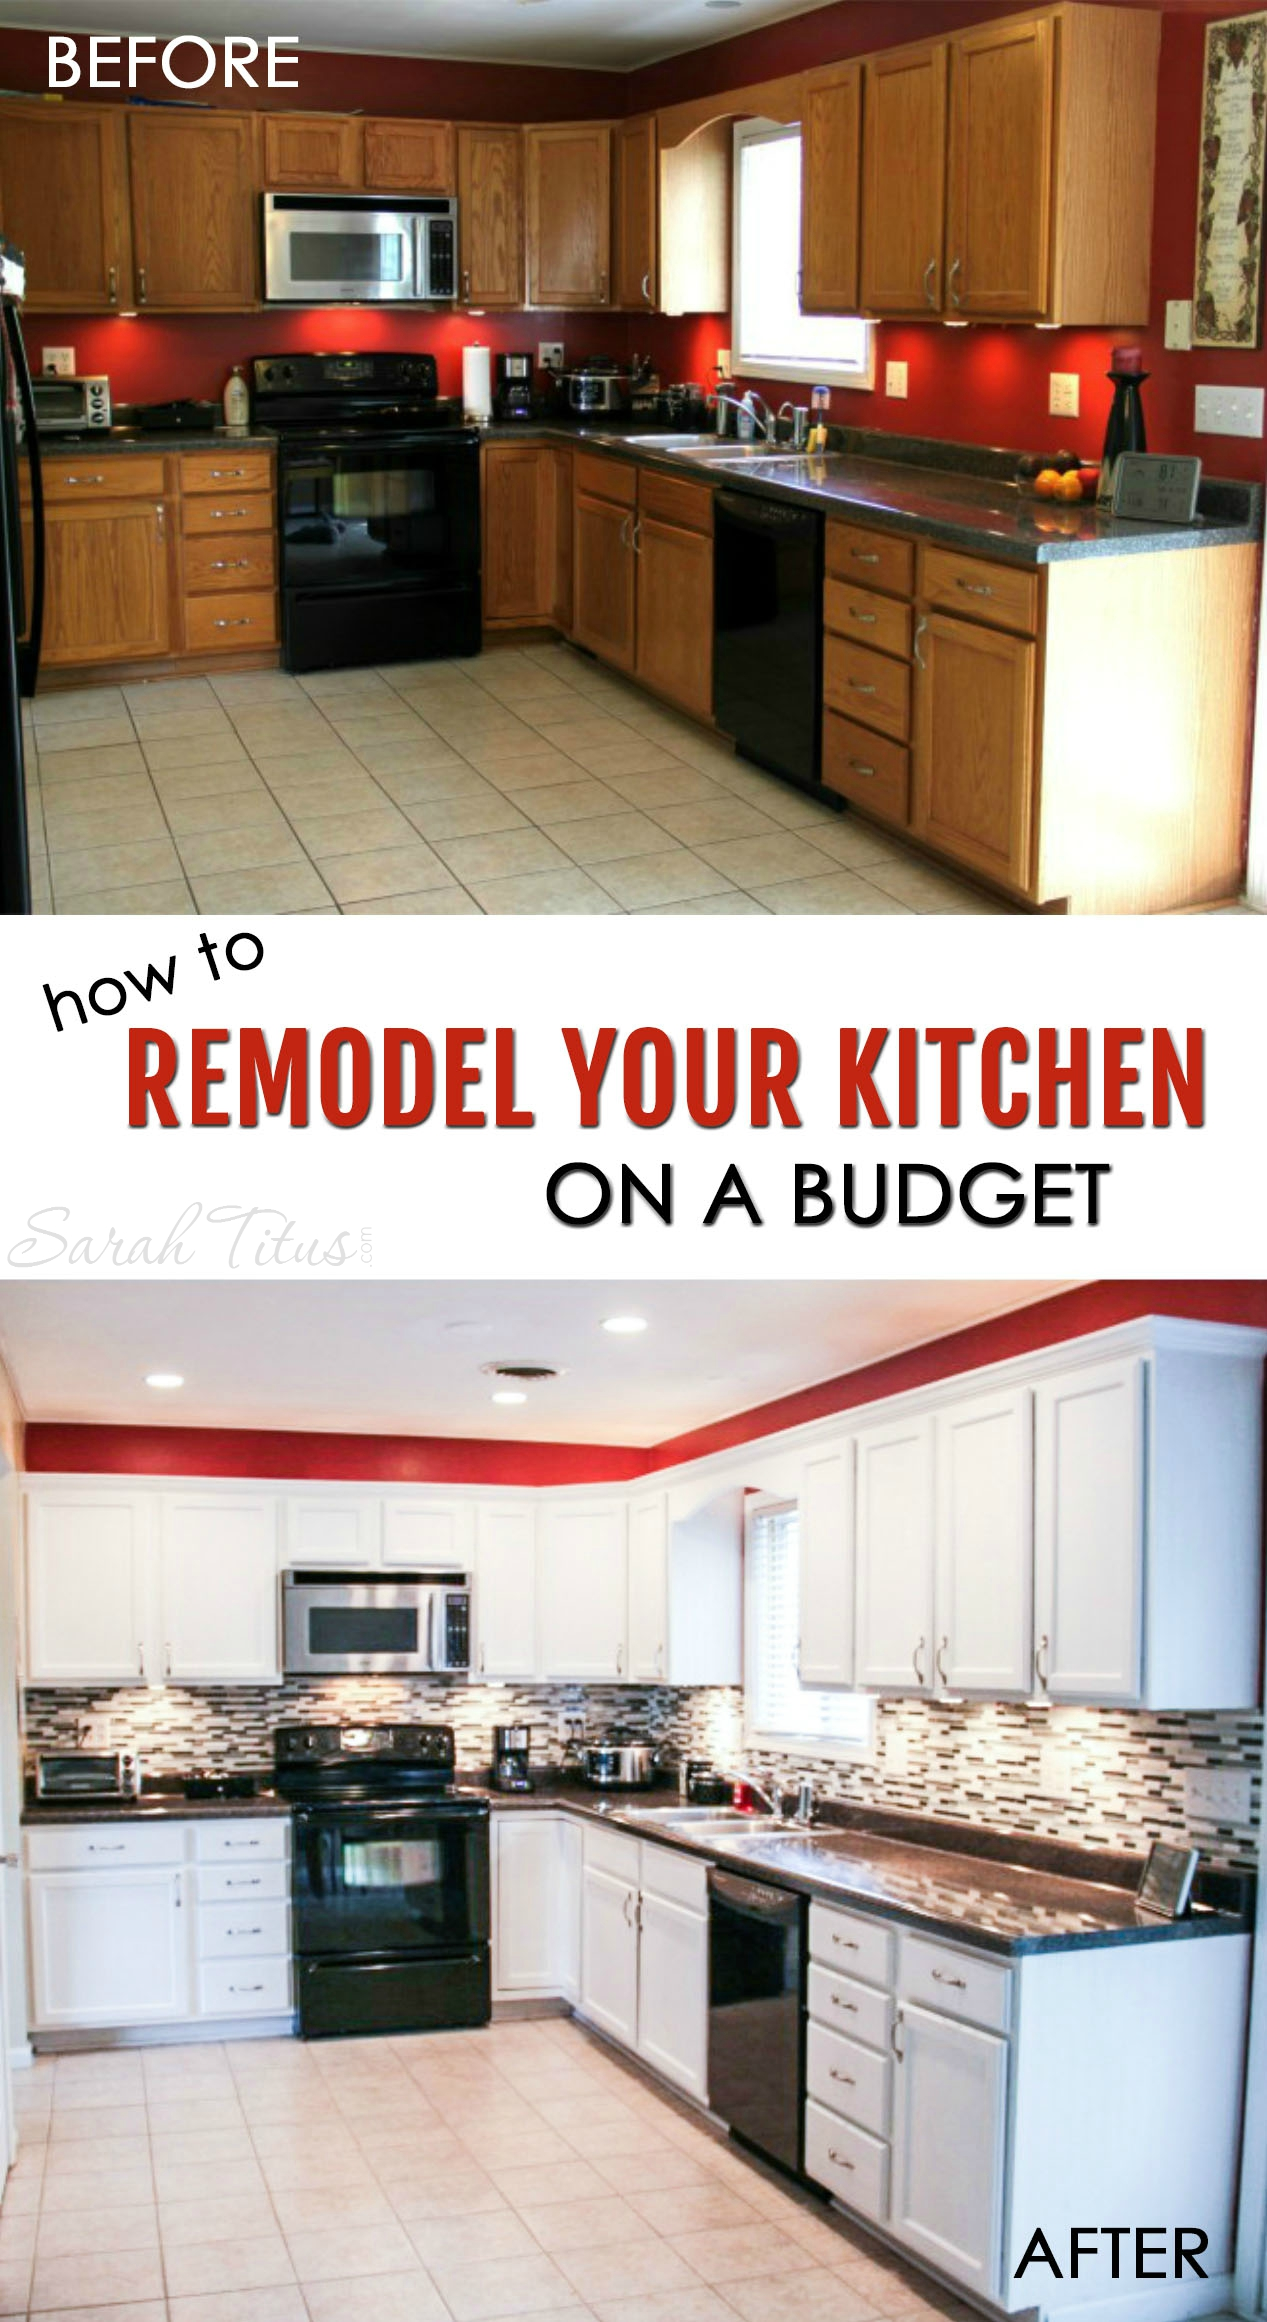 how to remodel your kitchen on a budget kitchen remodel budget Most kitchen renovations are very expensive but this trick can make your kitchen look brand